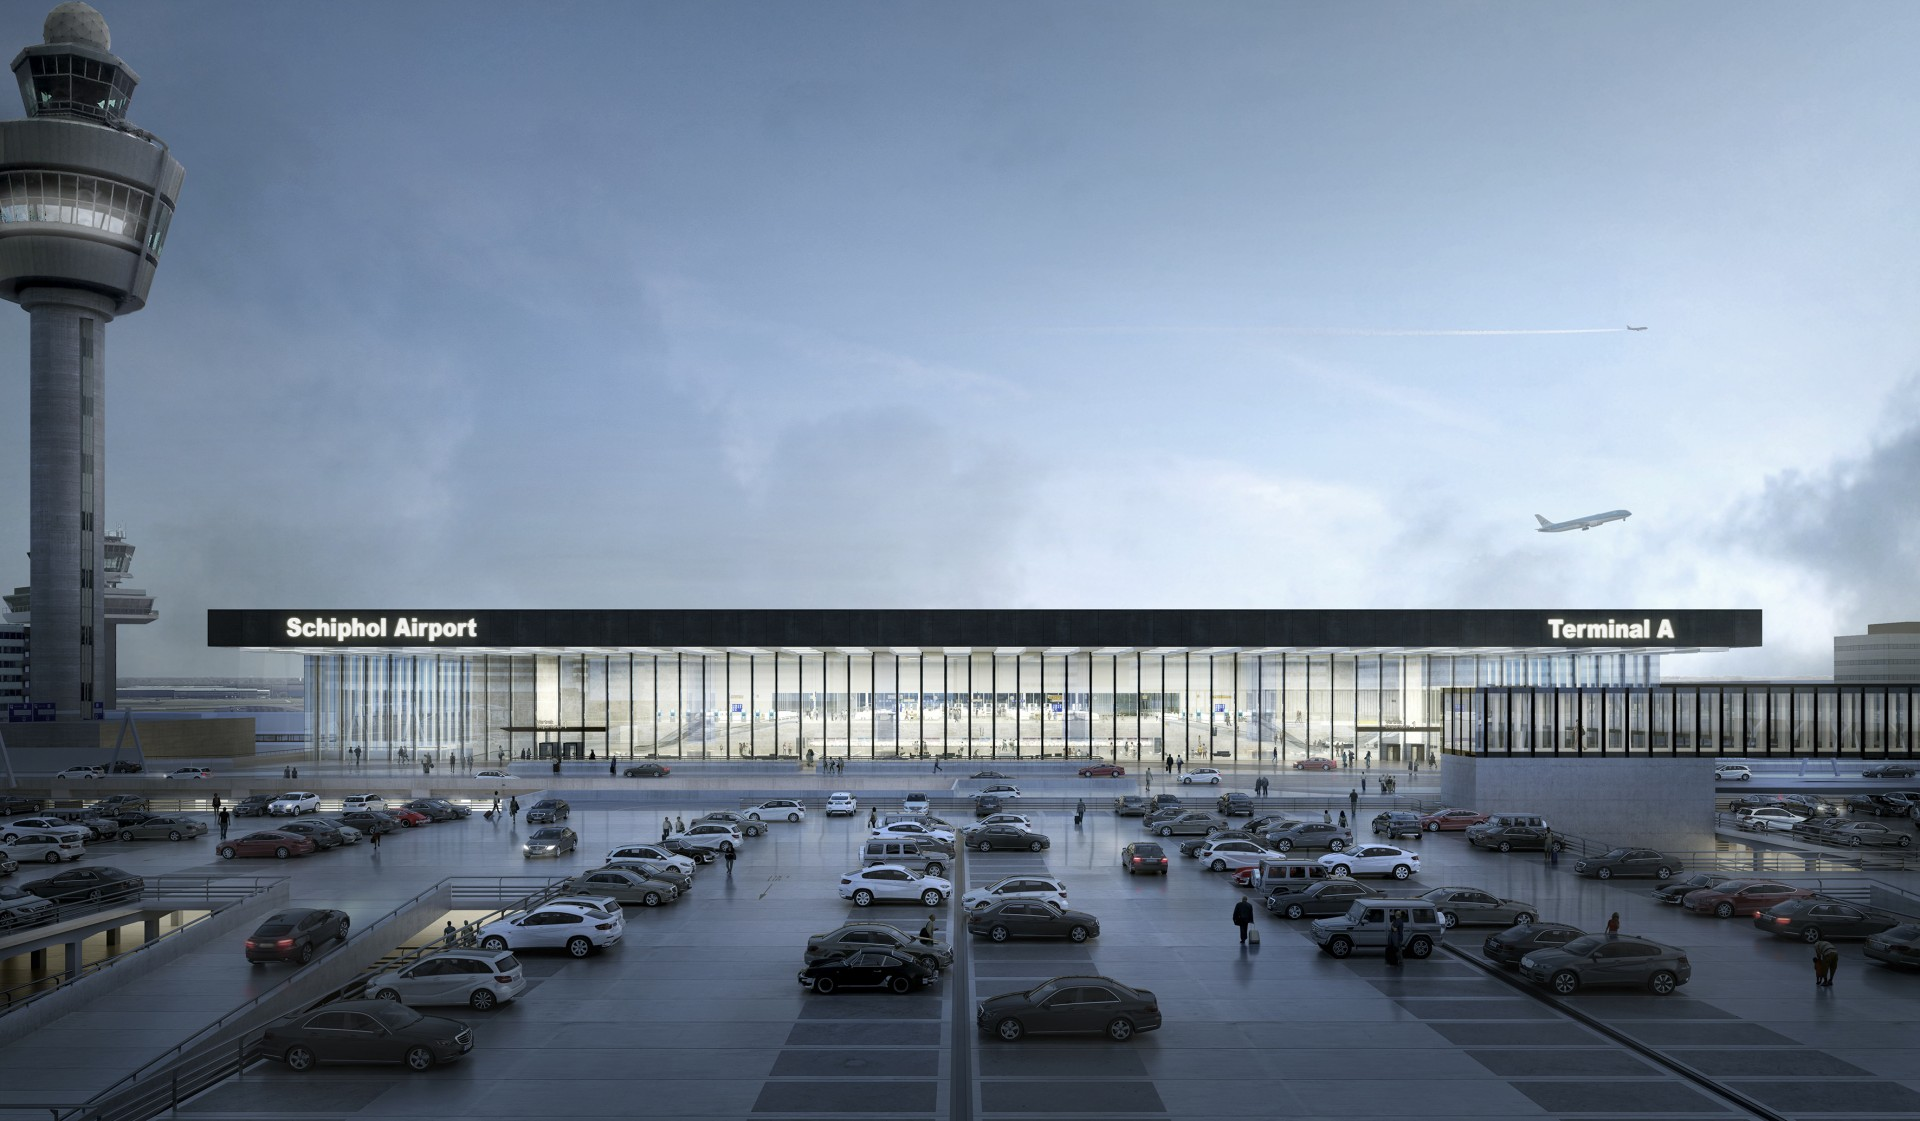 Schiphol airport expansion entrusted to Aecom 33